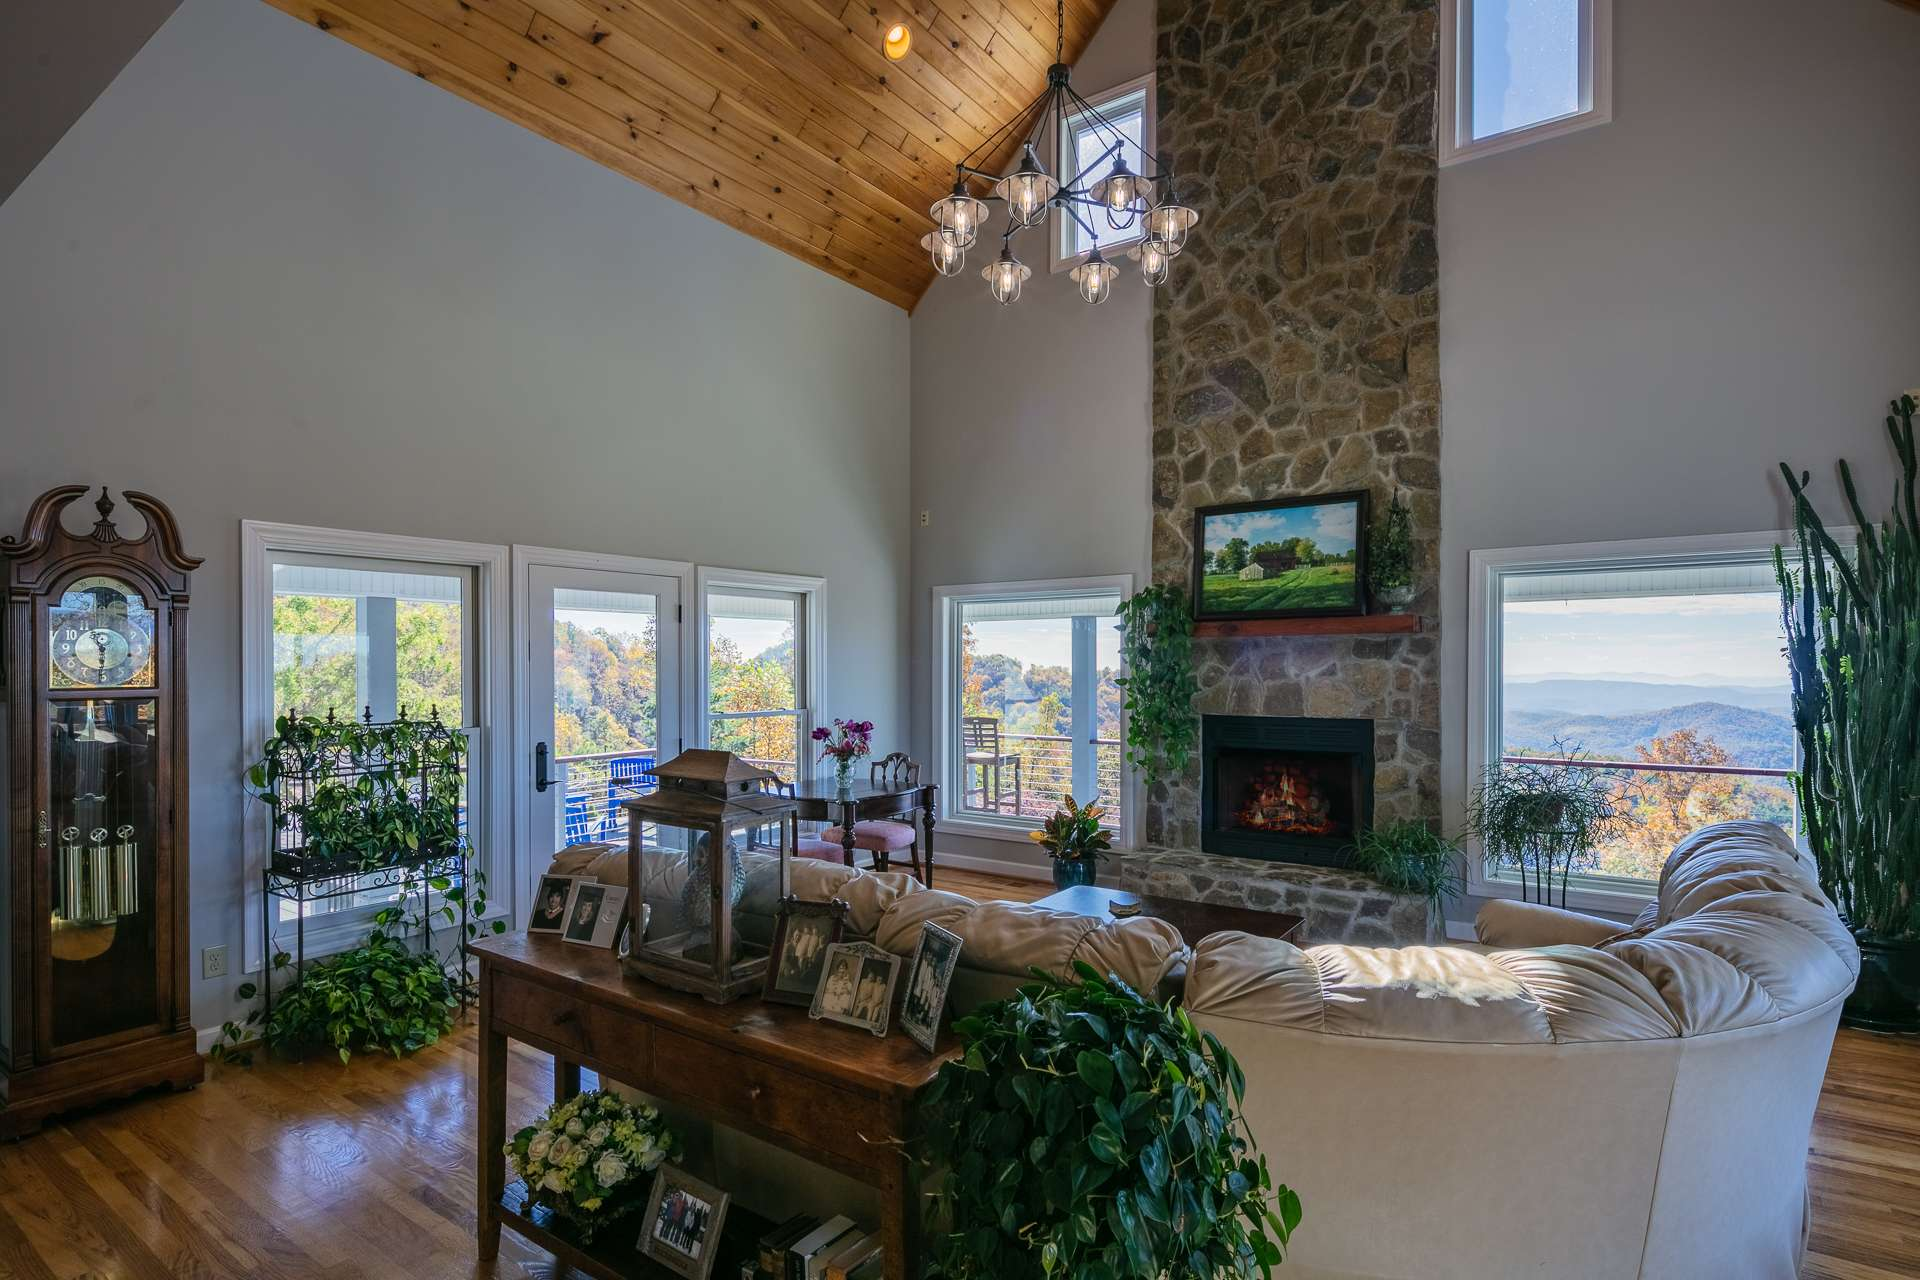 Relax in front of a warm fire while gazing at the views from inside.  Enjoy sunrises, sunsets, and Natures everchanging canvas  during all four seasons in the NC Mountains.